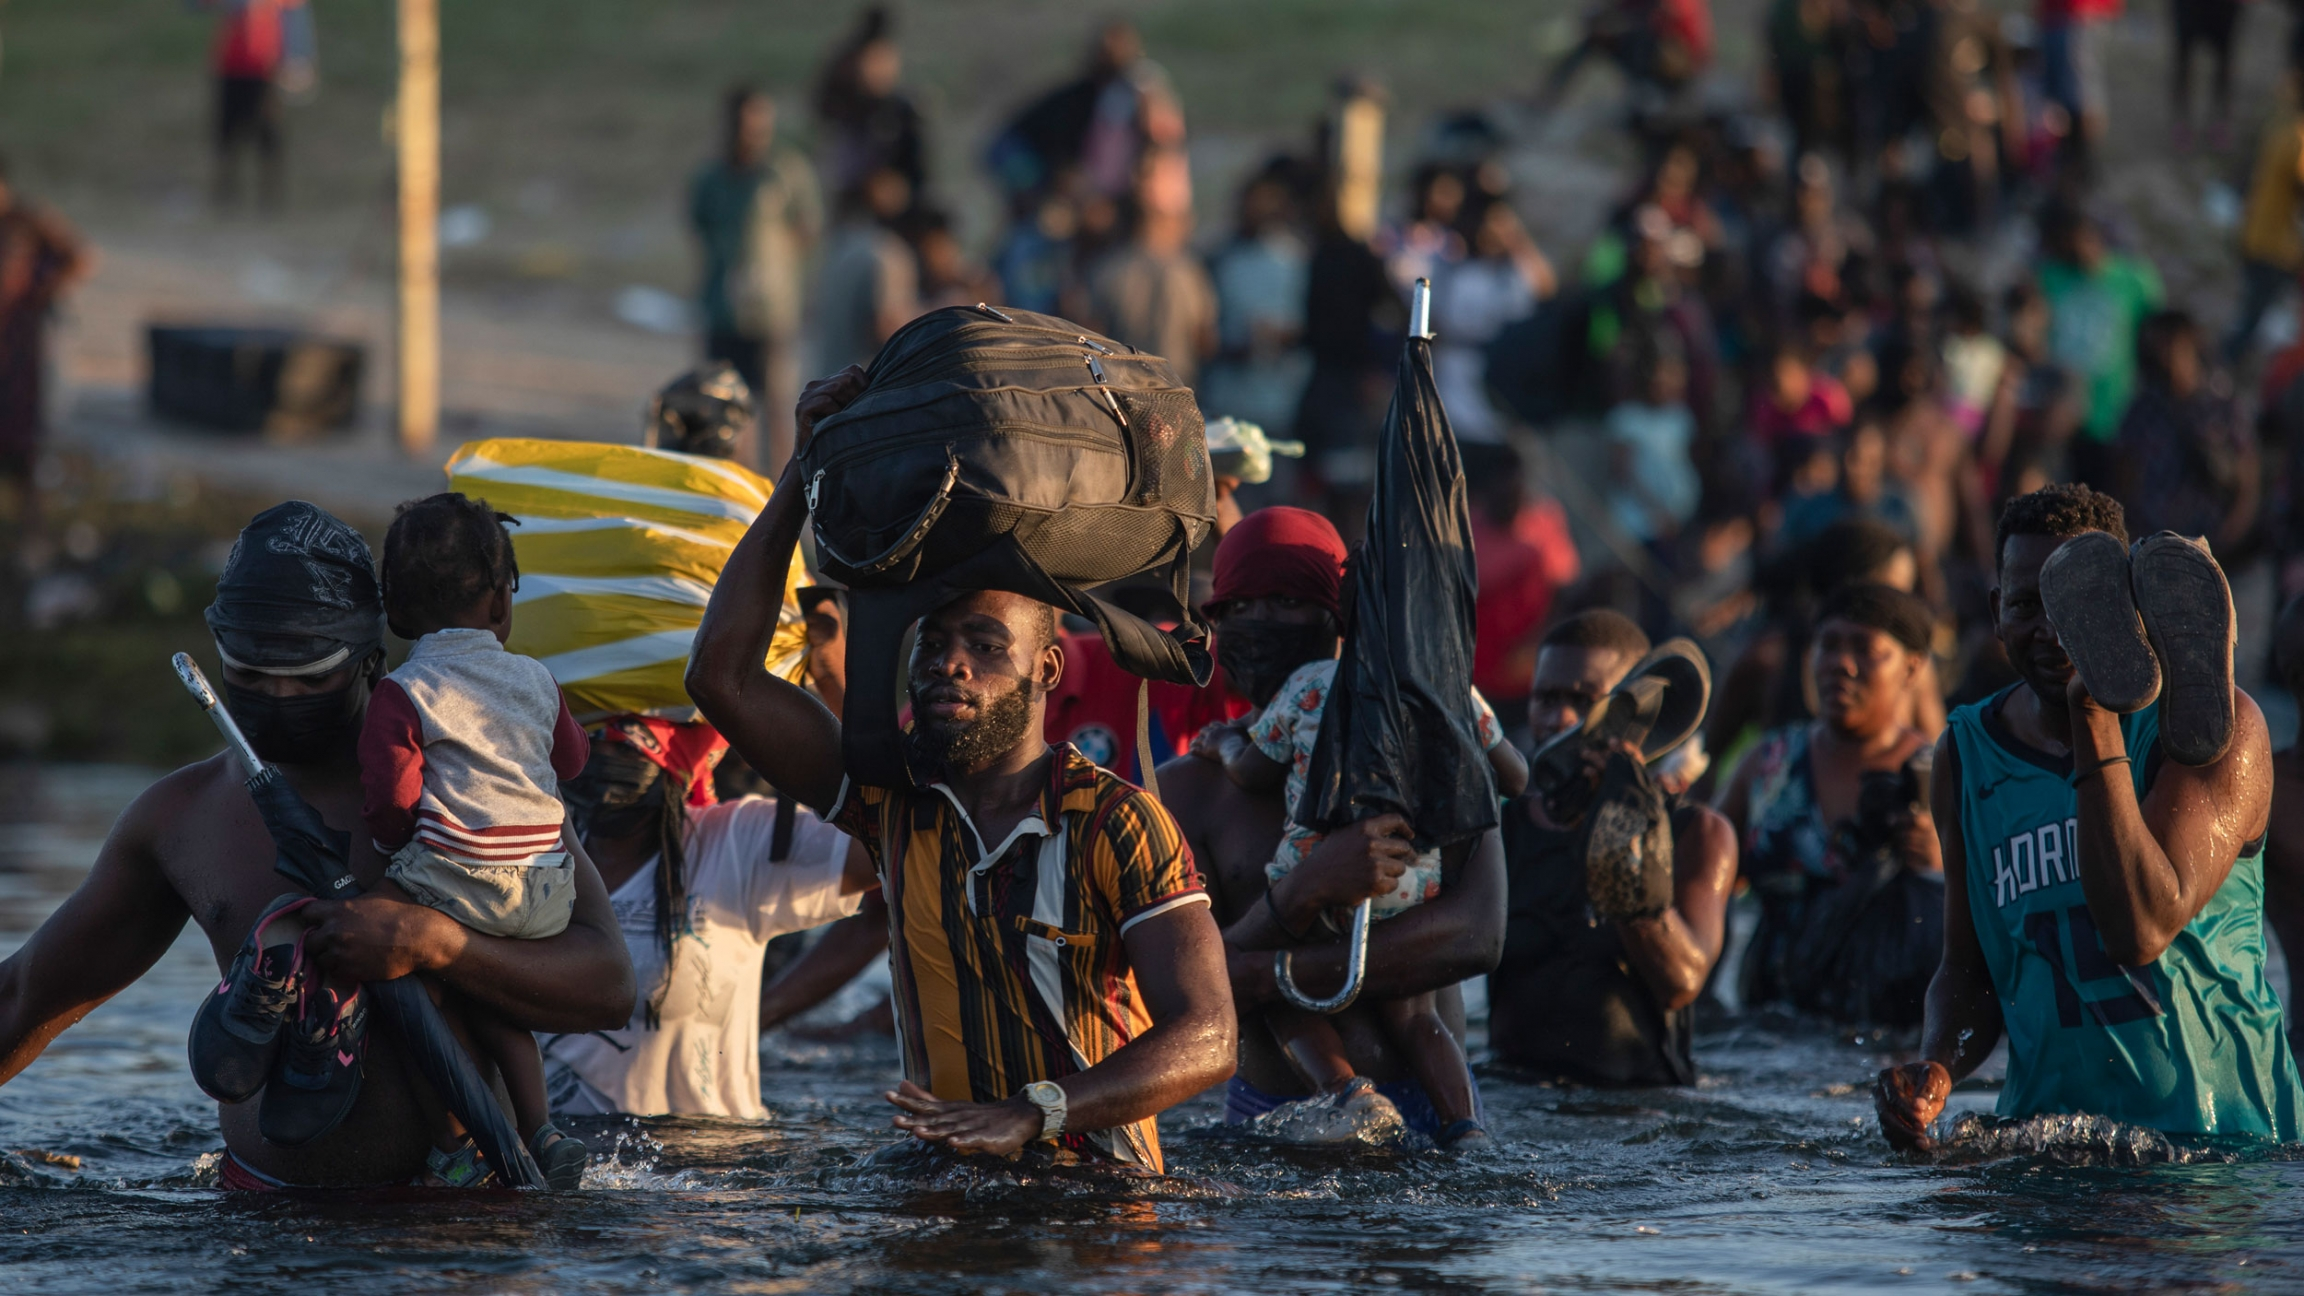 Migrants, many from Haiti, wade across the Rio Grande river from Del Rio, Texas, to return to Ciudad Acuña, Mexico, Monday, Sept. 20, 2021, to avoid deportation from the US.